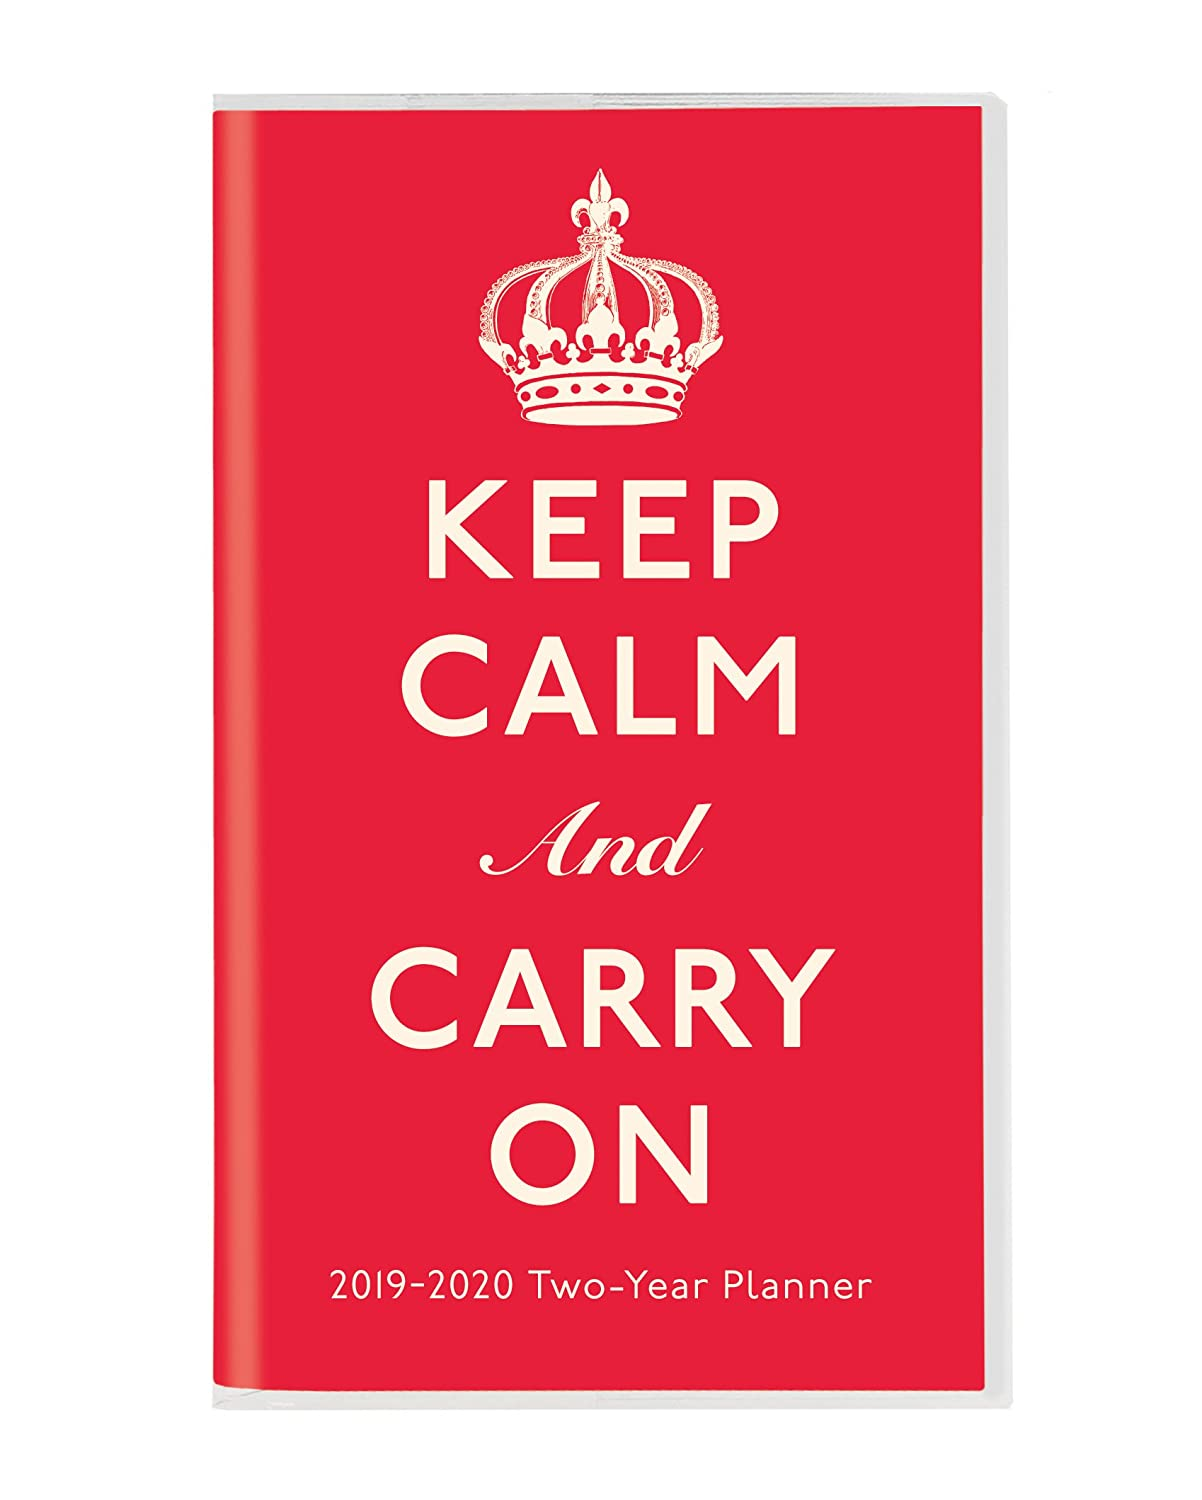 Keep Calm and Carry on 2018-2020 Two-Year Planner Graphique De France 2Y00619 CALENDAR Calendars